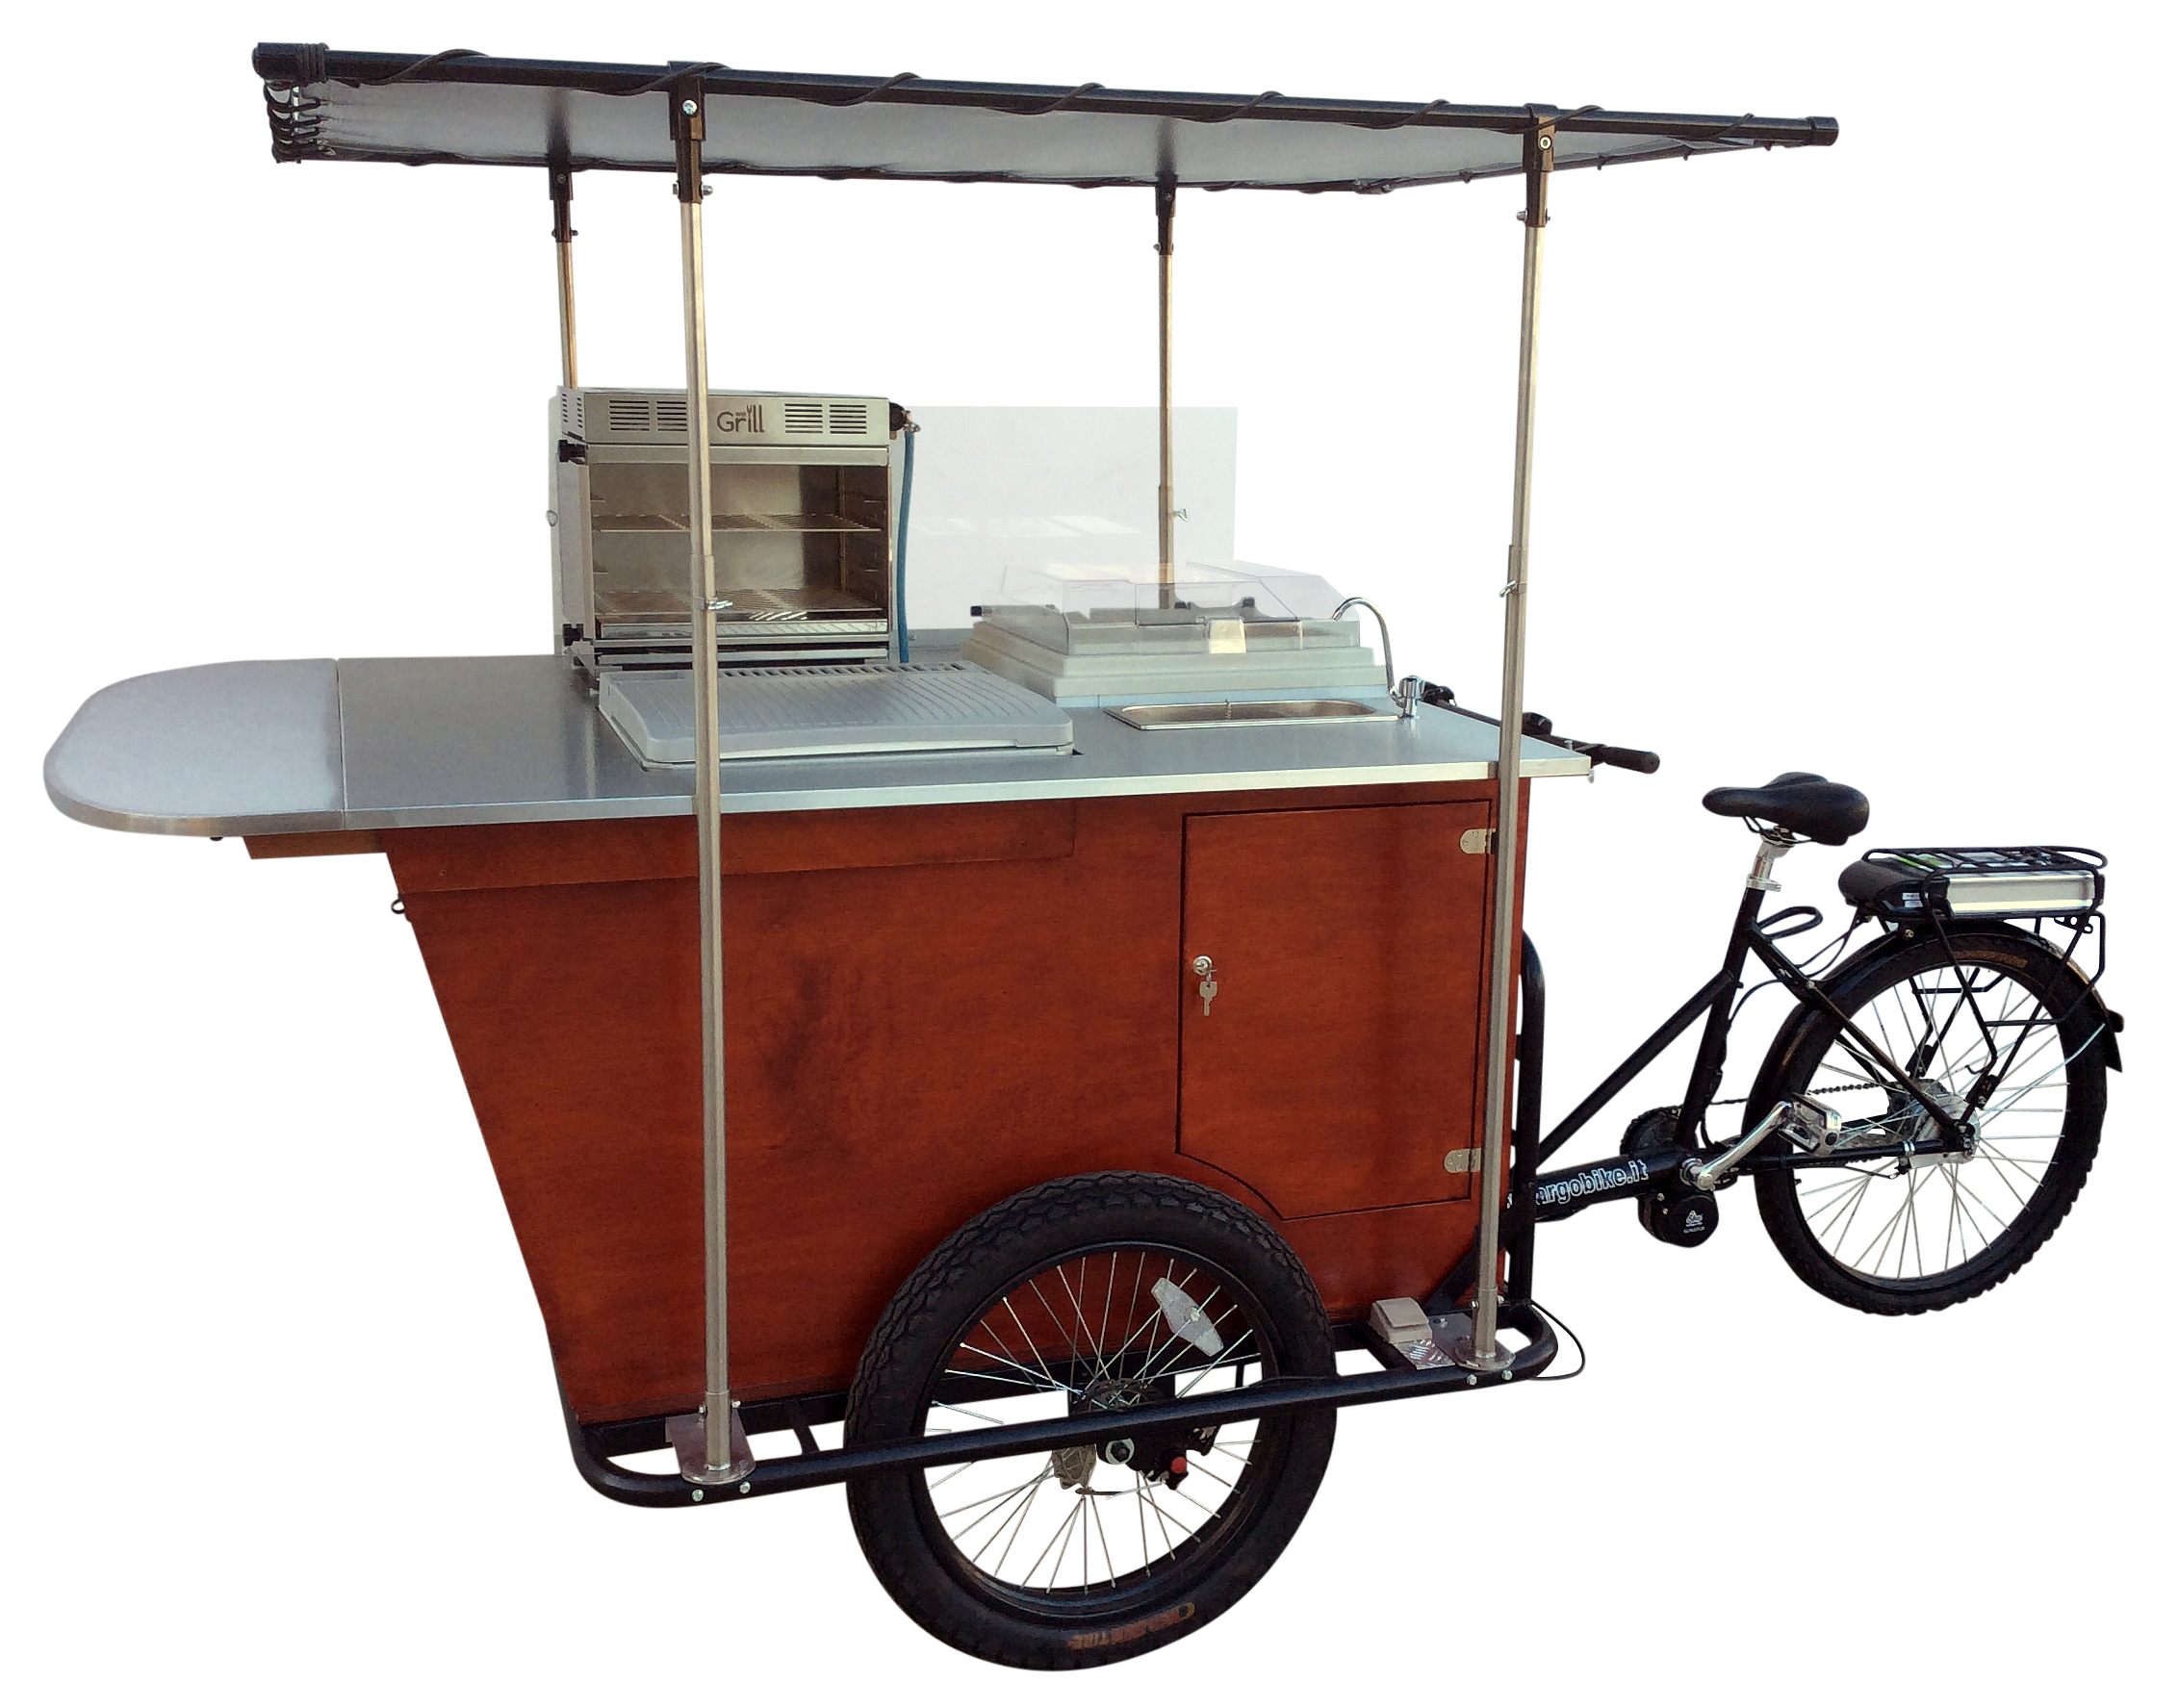 TRICICLO_STREET_FOOD_BIKE_YACTING_PANINI